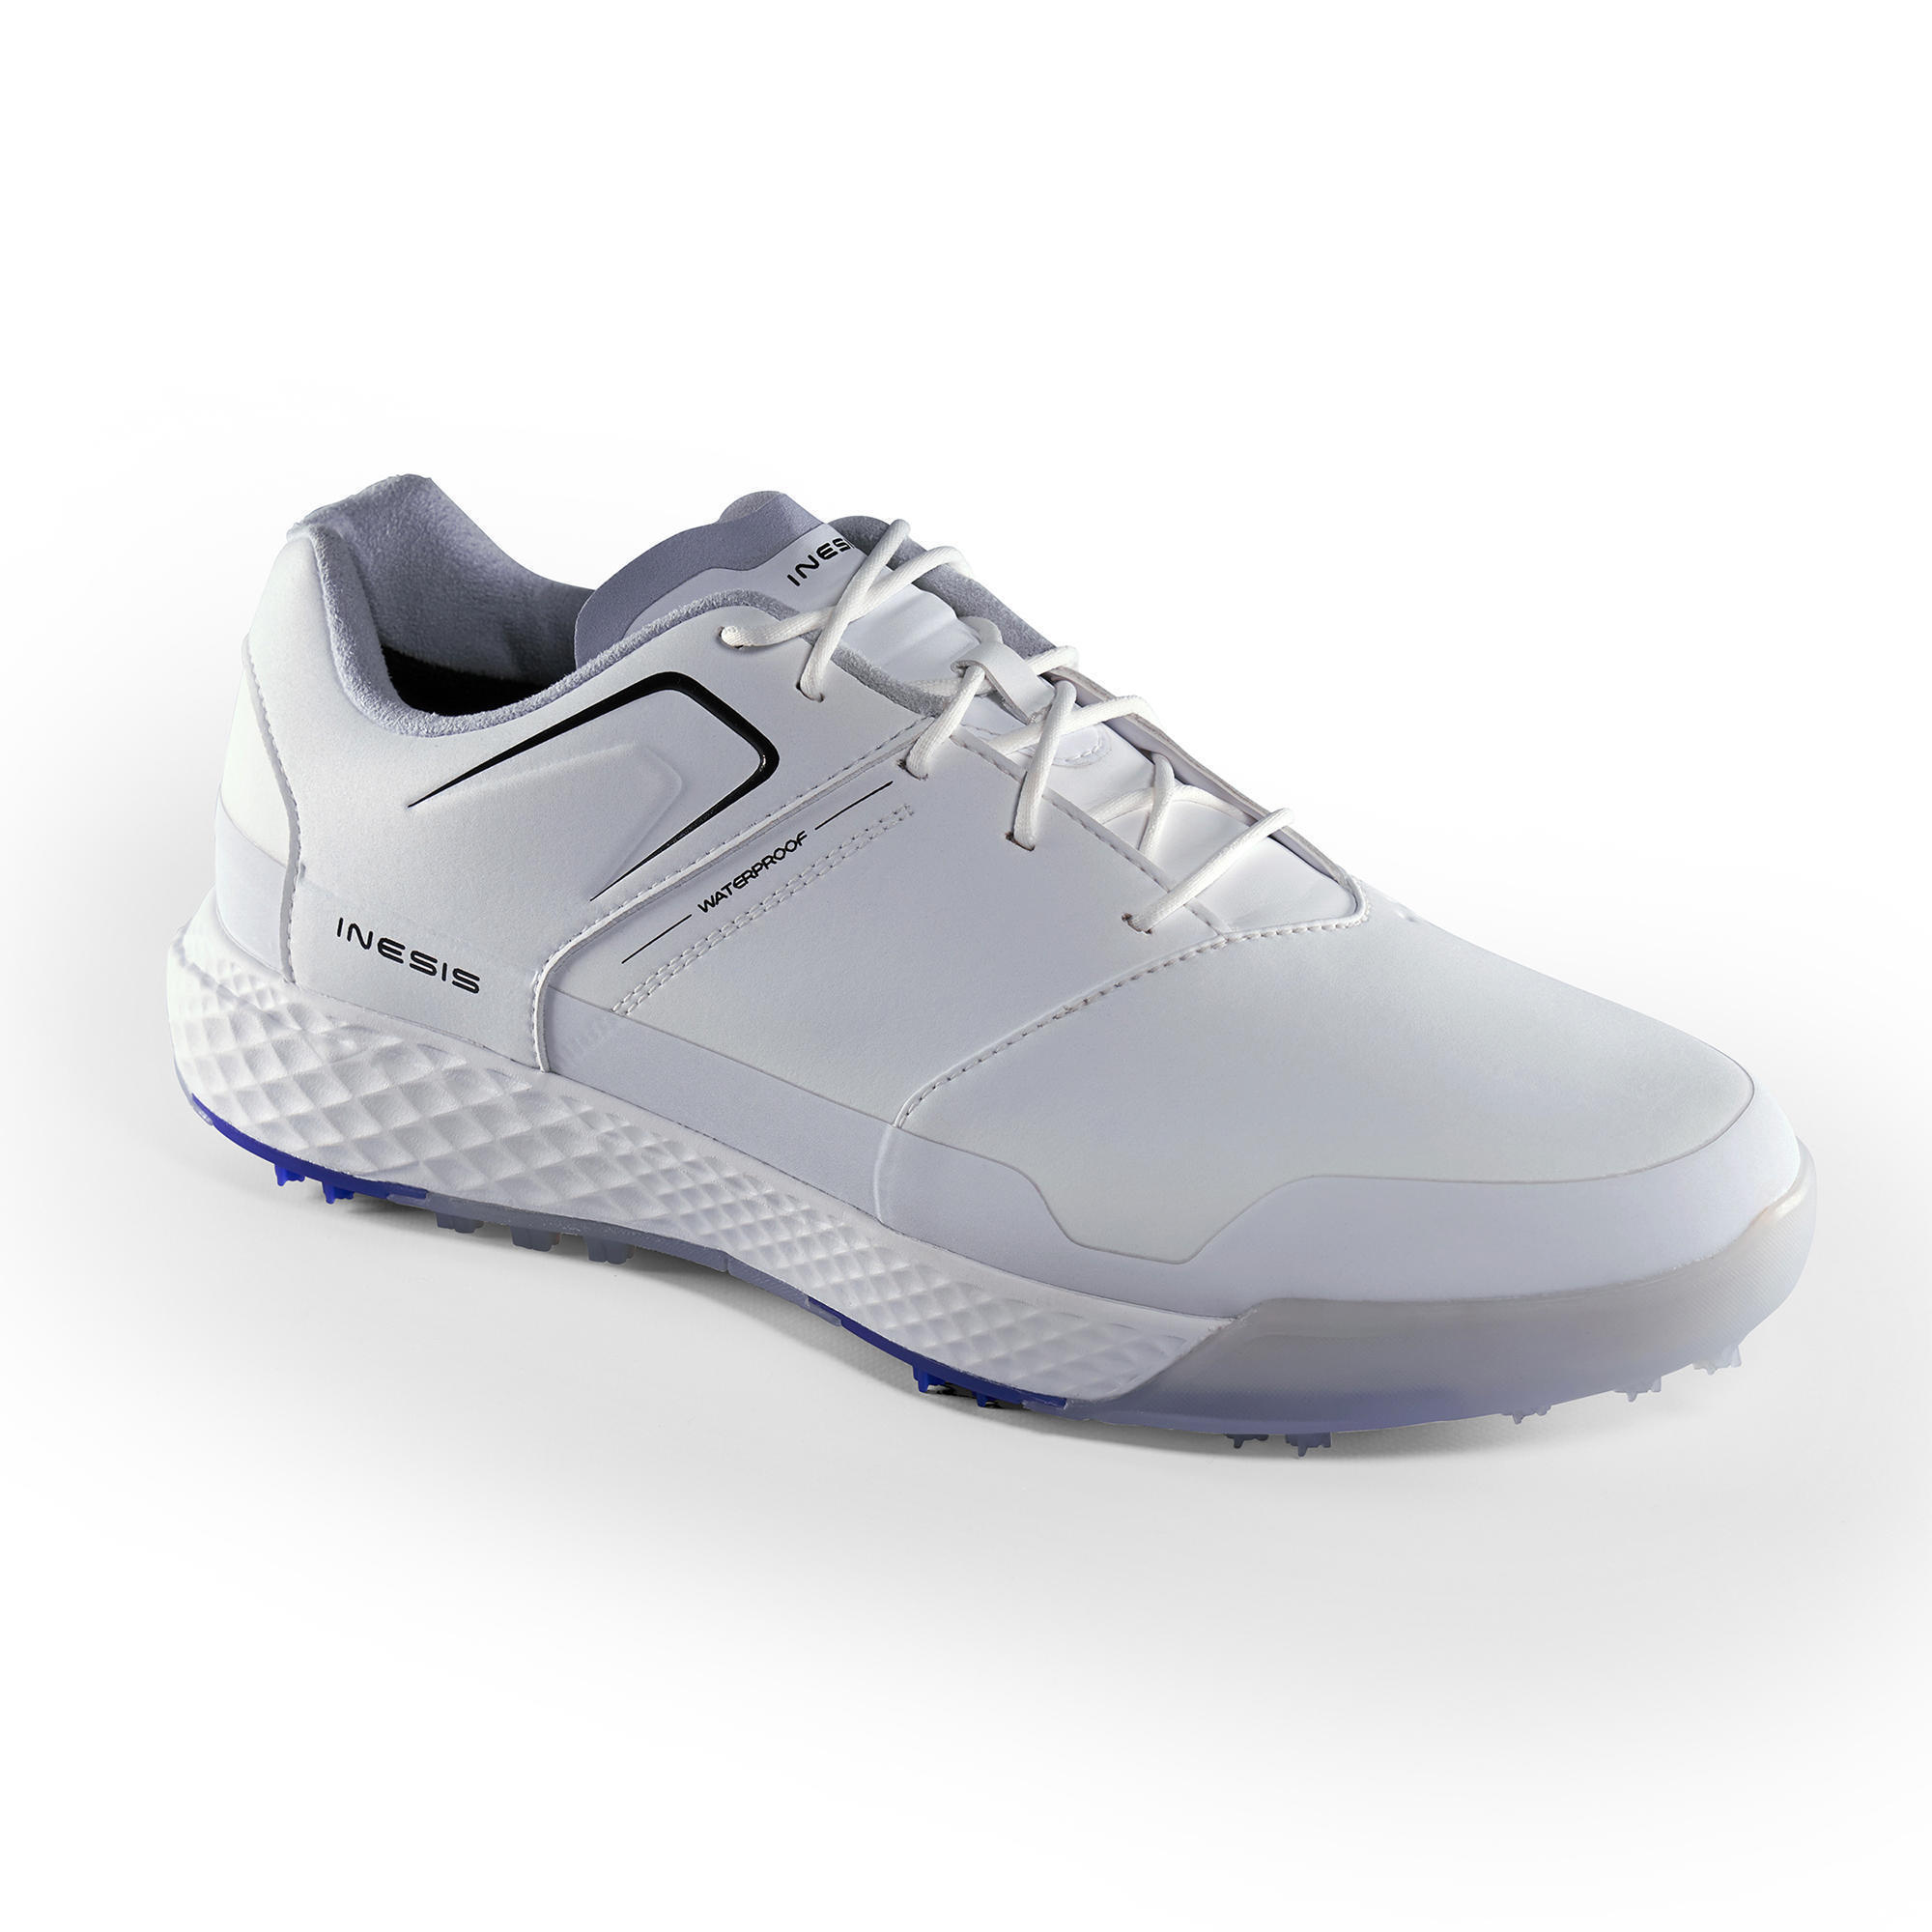 CHAUSSURES GOLF HOMME GRIP WATERPROOF BLANCHES - Inesis